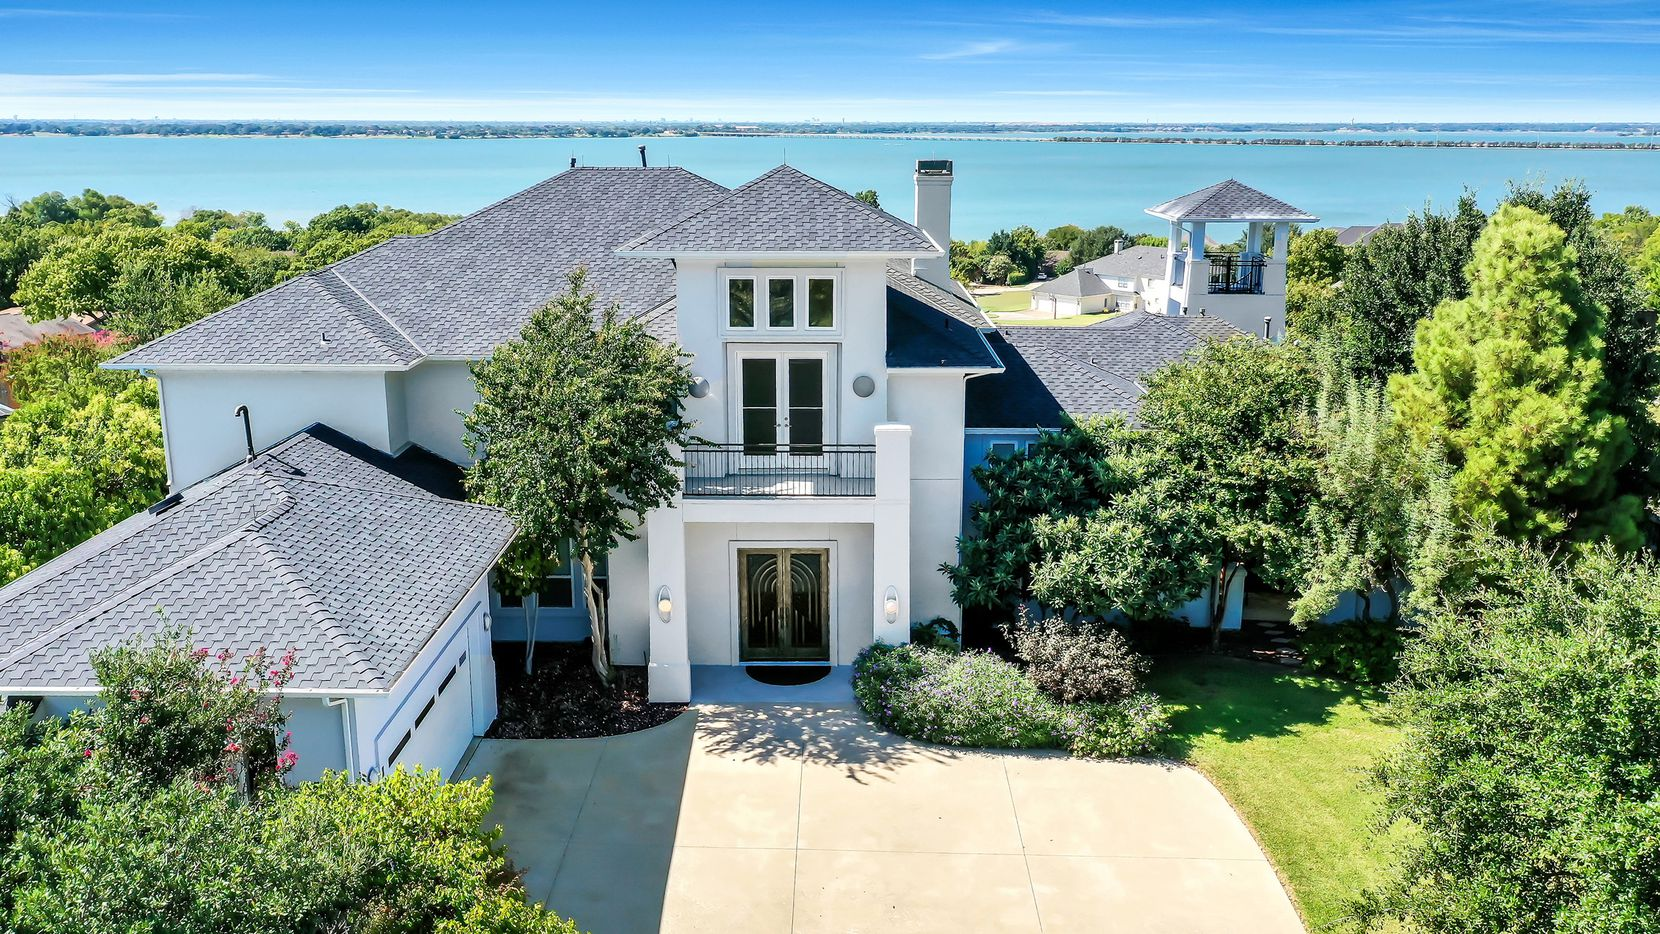 Offered for $1,399,000, the estate at 1724 Ridge Road in Rockwall features unobstructed lake views and abundant indoor/outdoor space for entertaining.